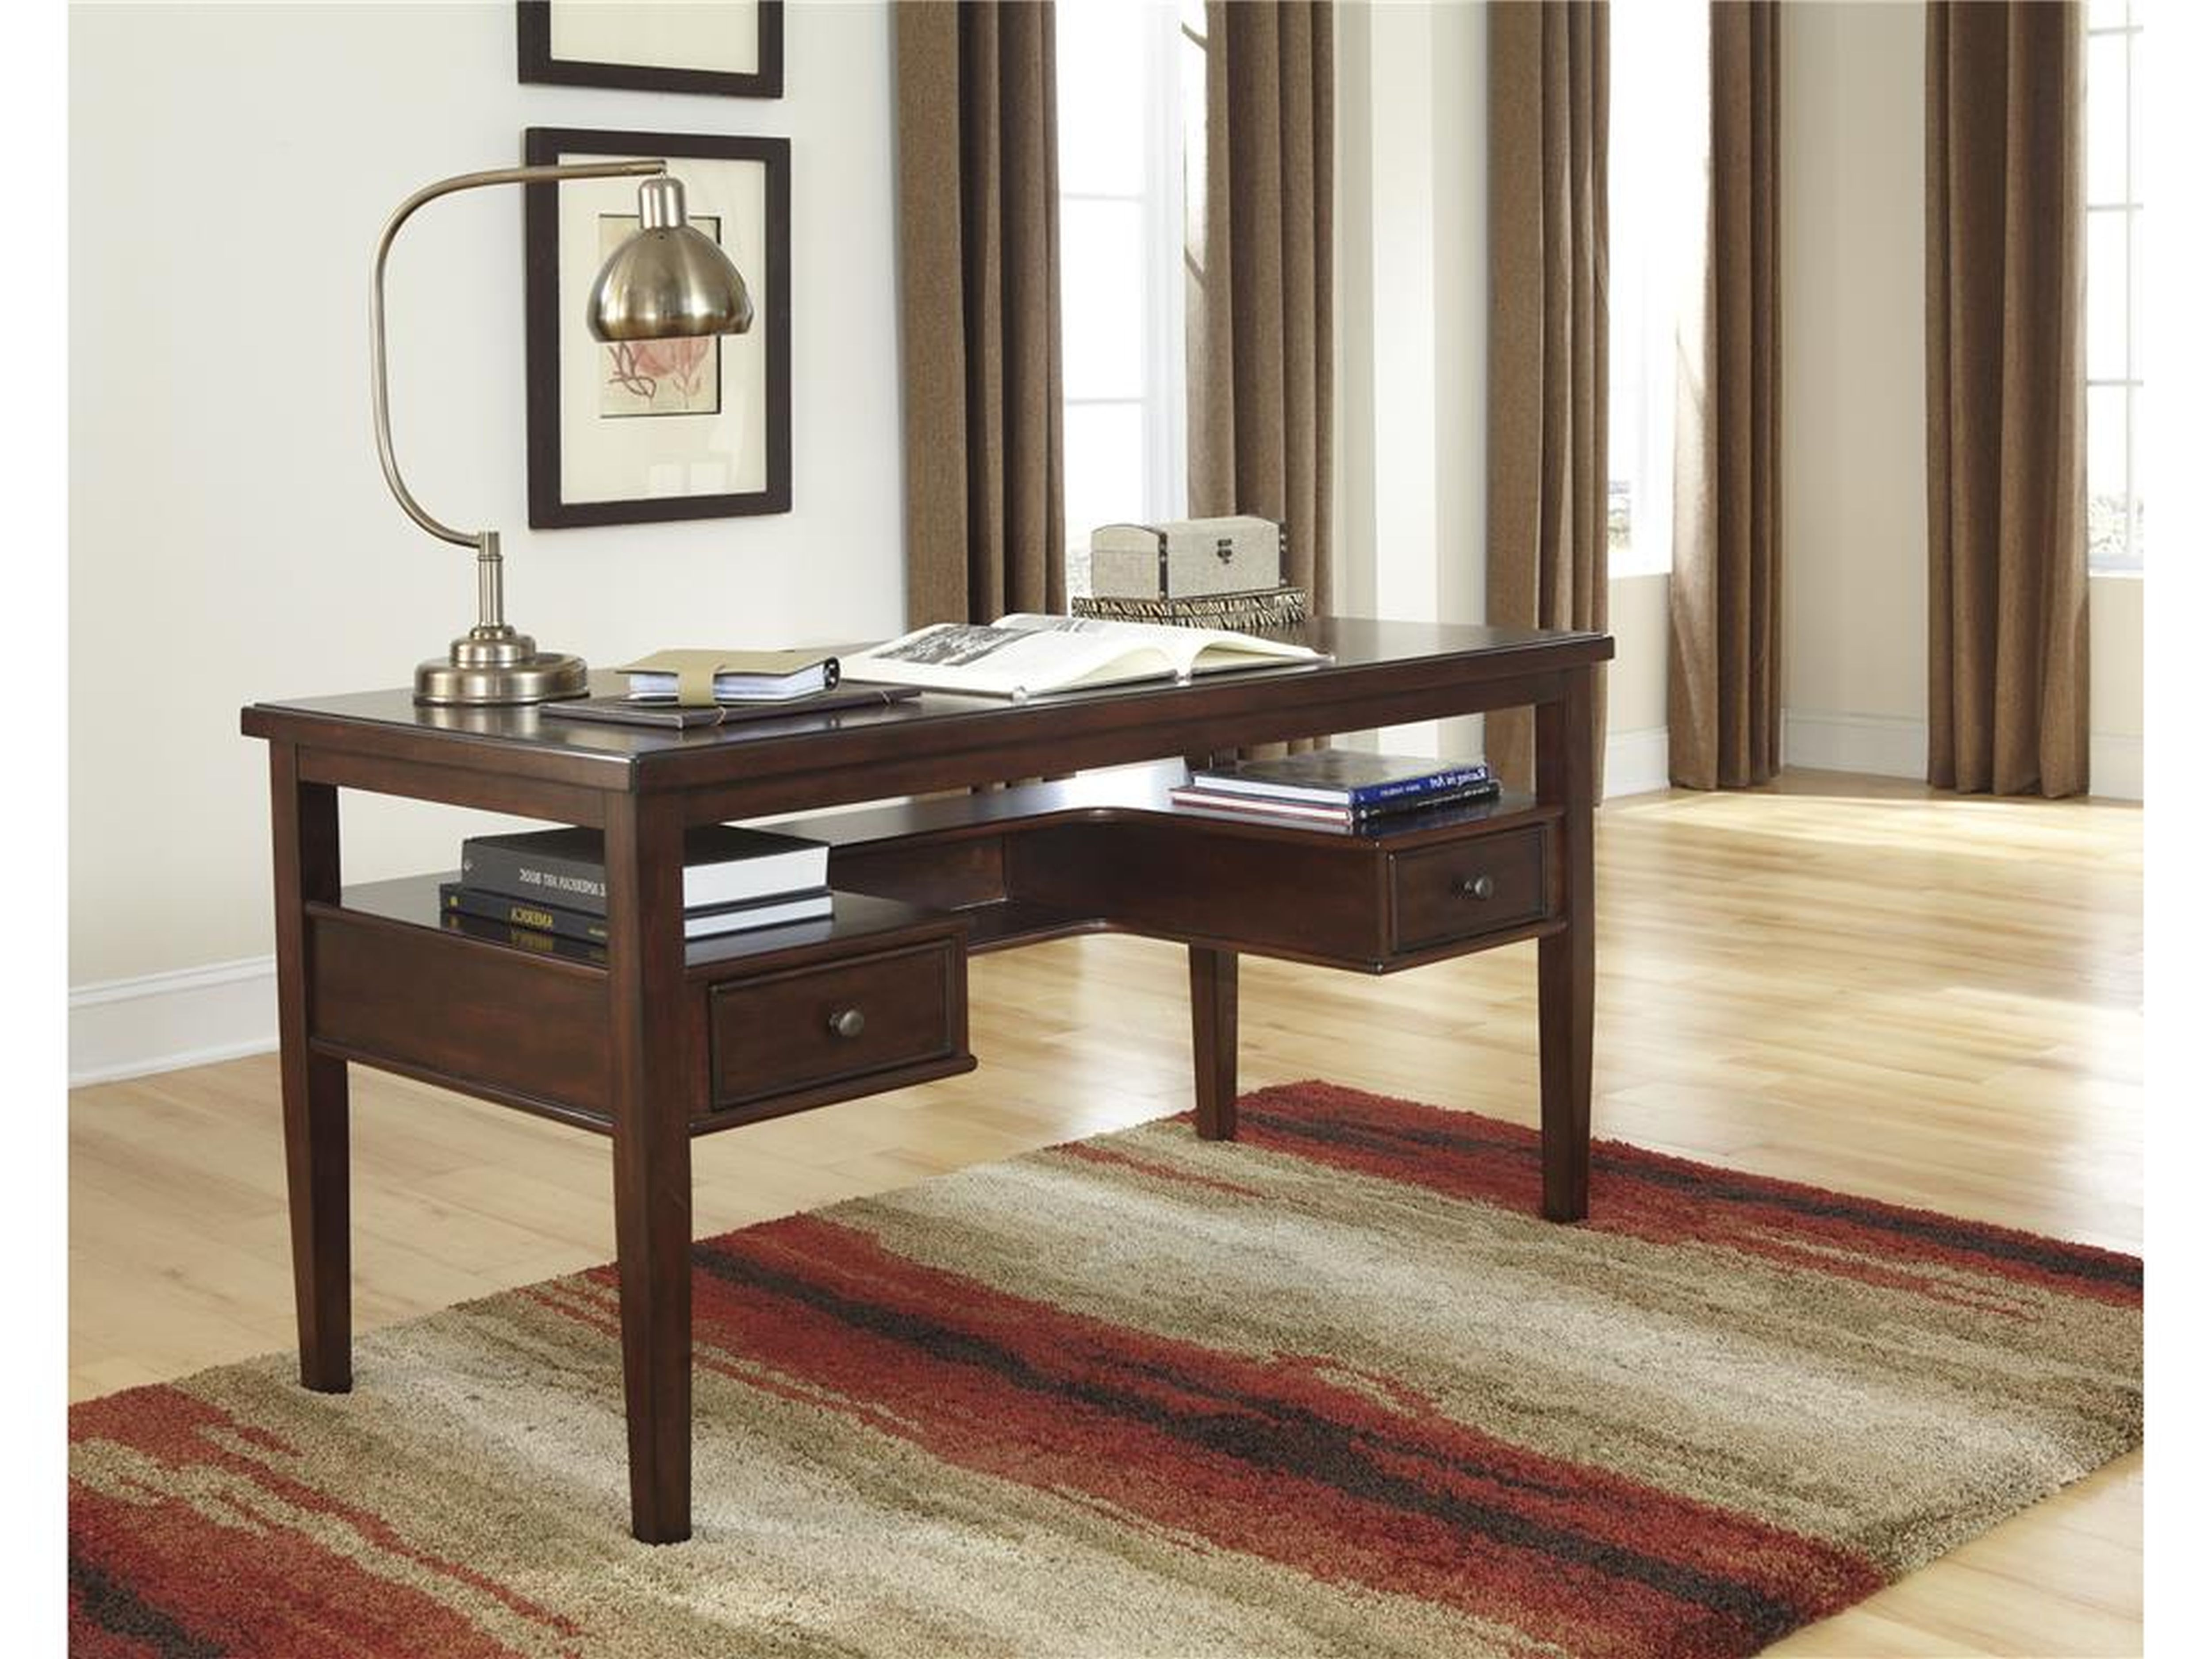 Furniture Impressive Deep Brown Wooden Desk Ideas For Small